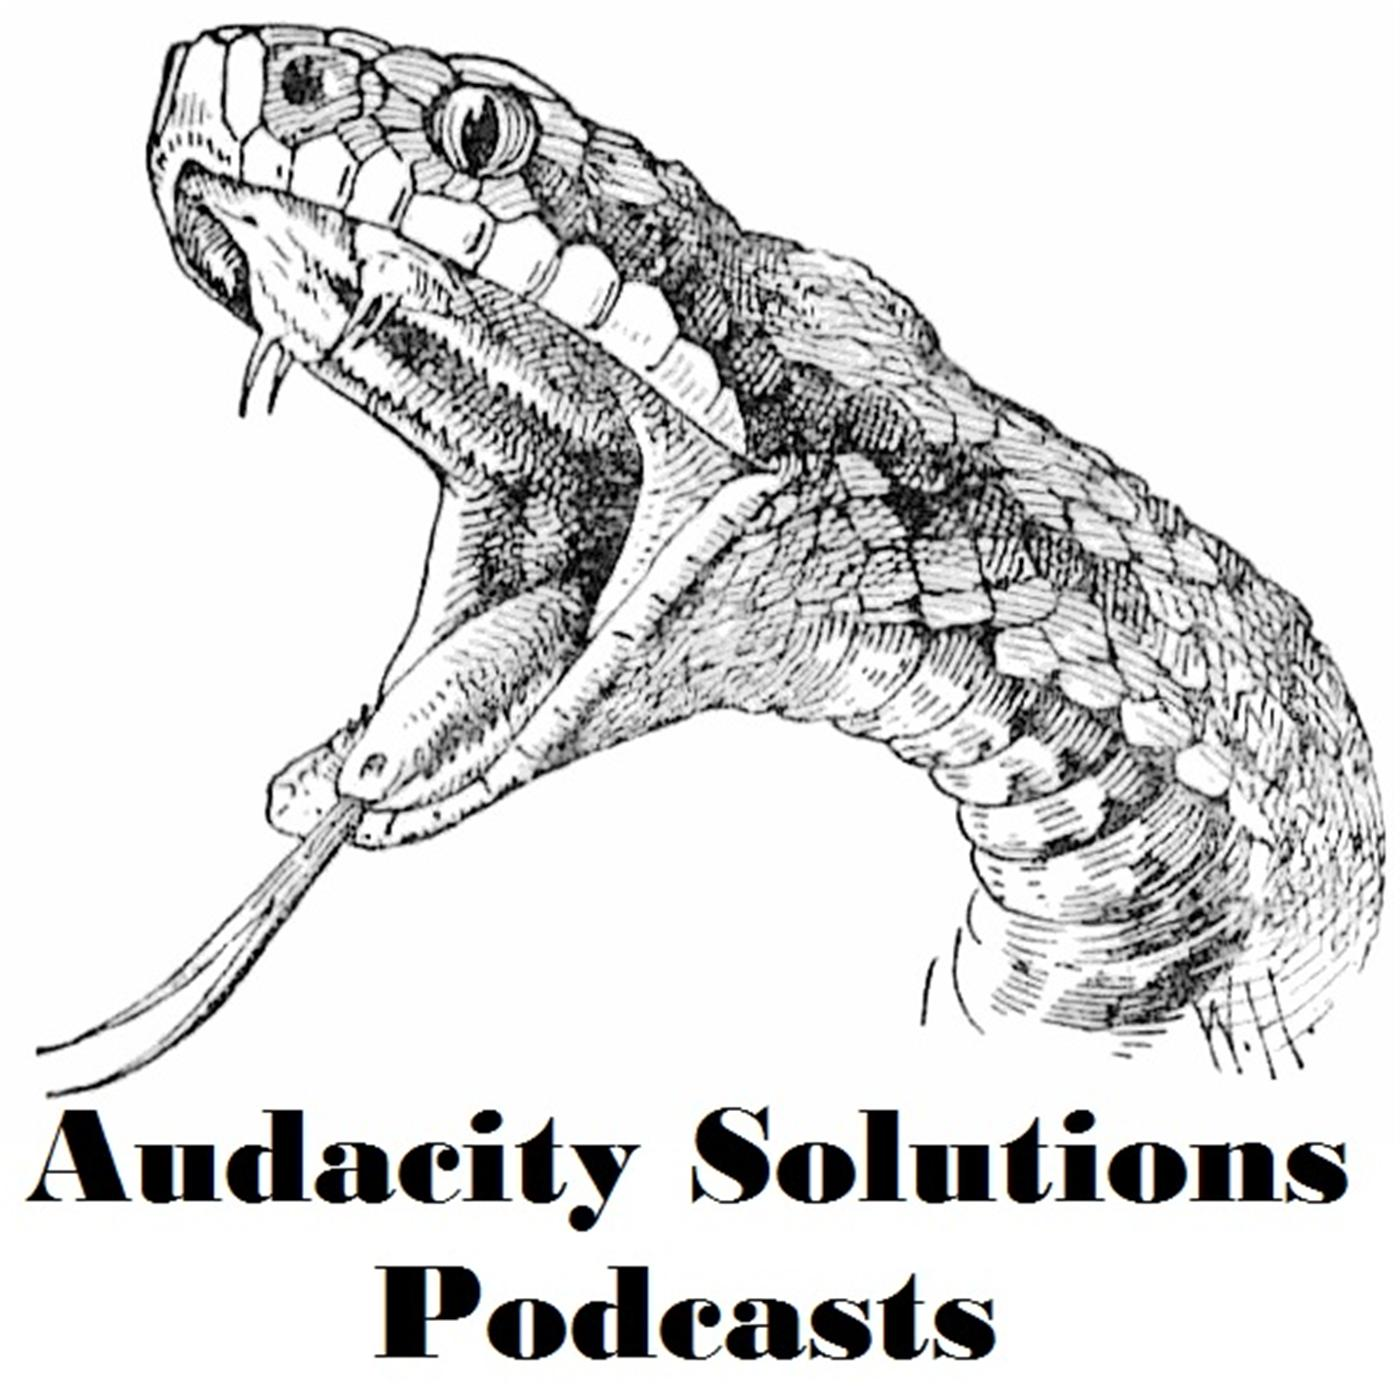 Audacity Solutions Podcasts